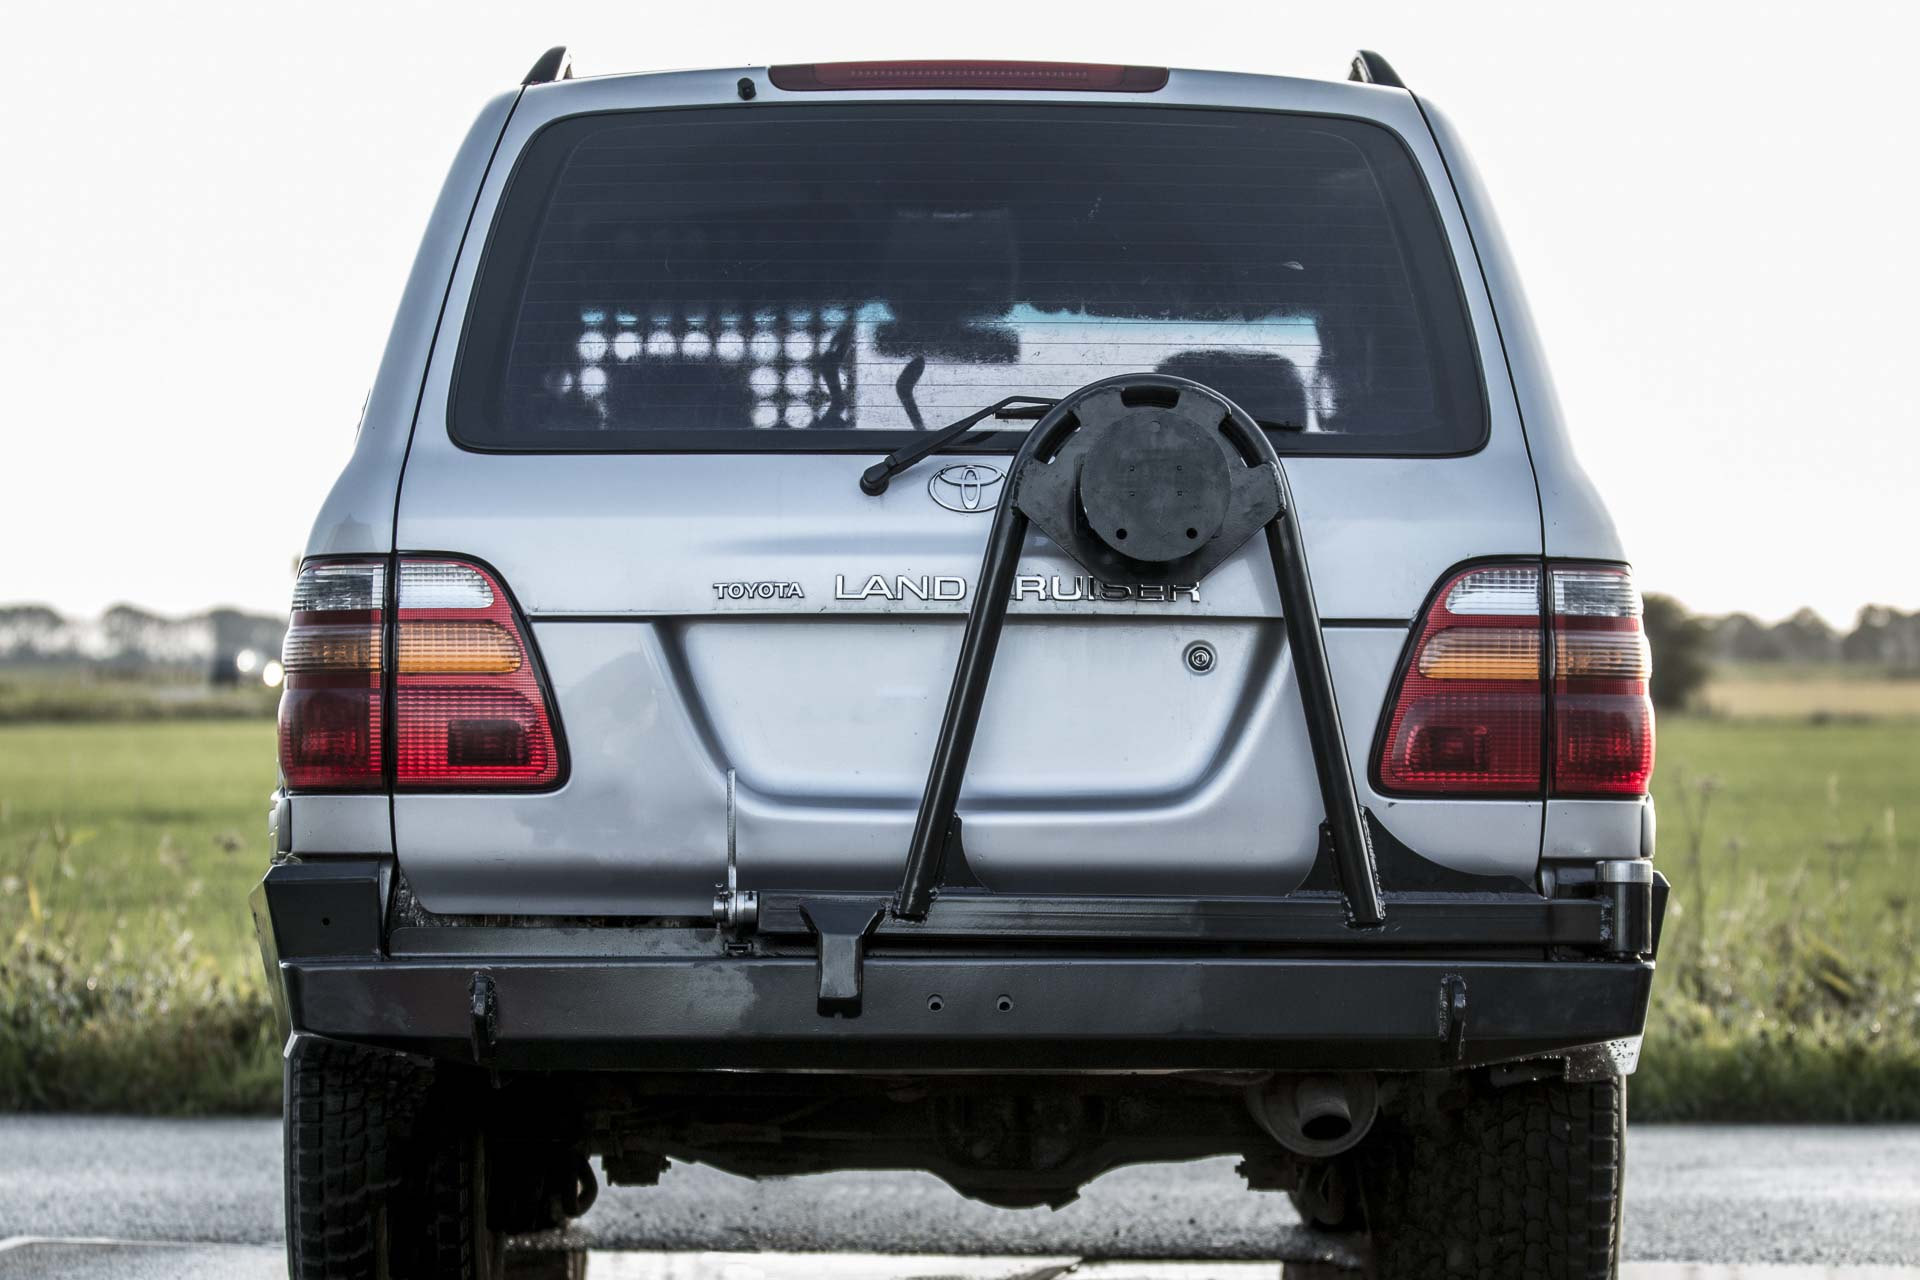 Wink 4x4 Engineered Performance Toyota Land Cruiser 100 Series Designed To Match The Body Lines Of